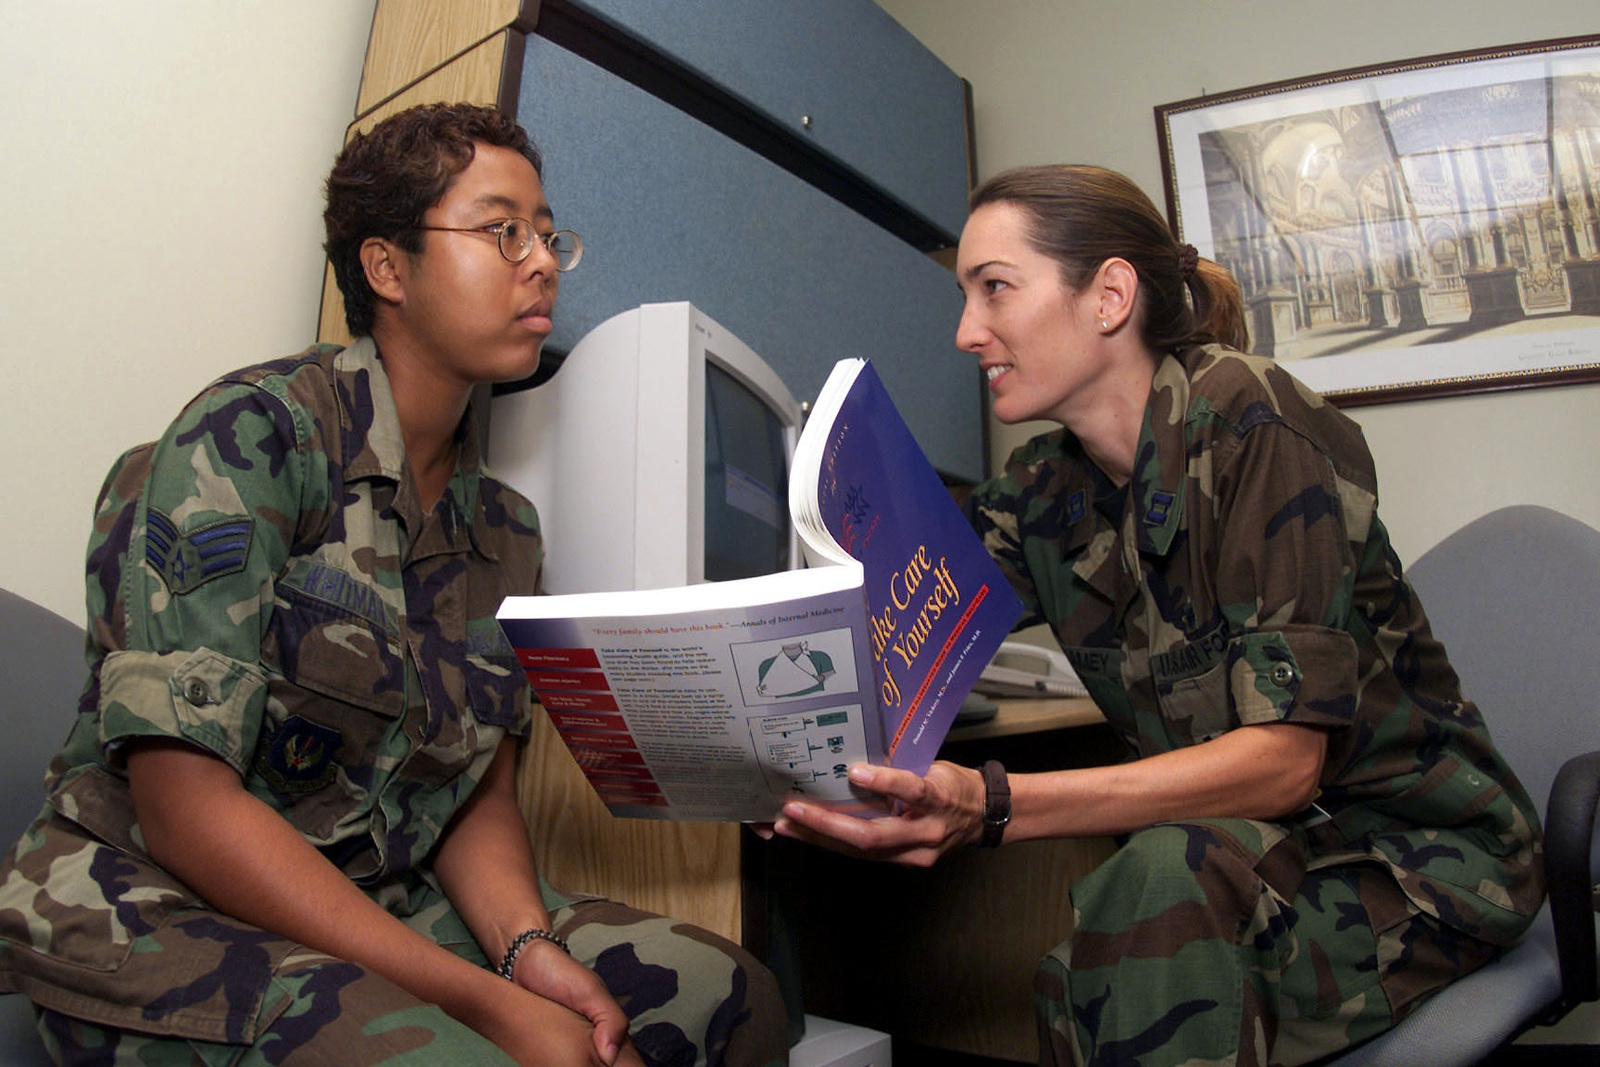 A Triage Nurse, Captain Jennifer McKaney, 31st Medical Group Aviano Air Base, Italy, gives SENIOR AIRMAN Laschelle Whitman information on home remedies for common ailments. The Triage Nurse at Aviano helps patients at the hospital and gives phone consultations